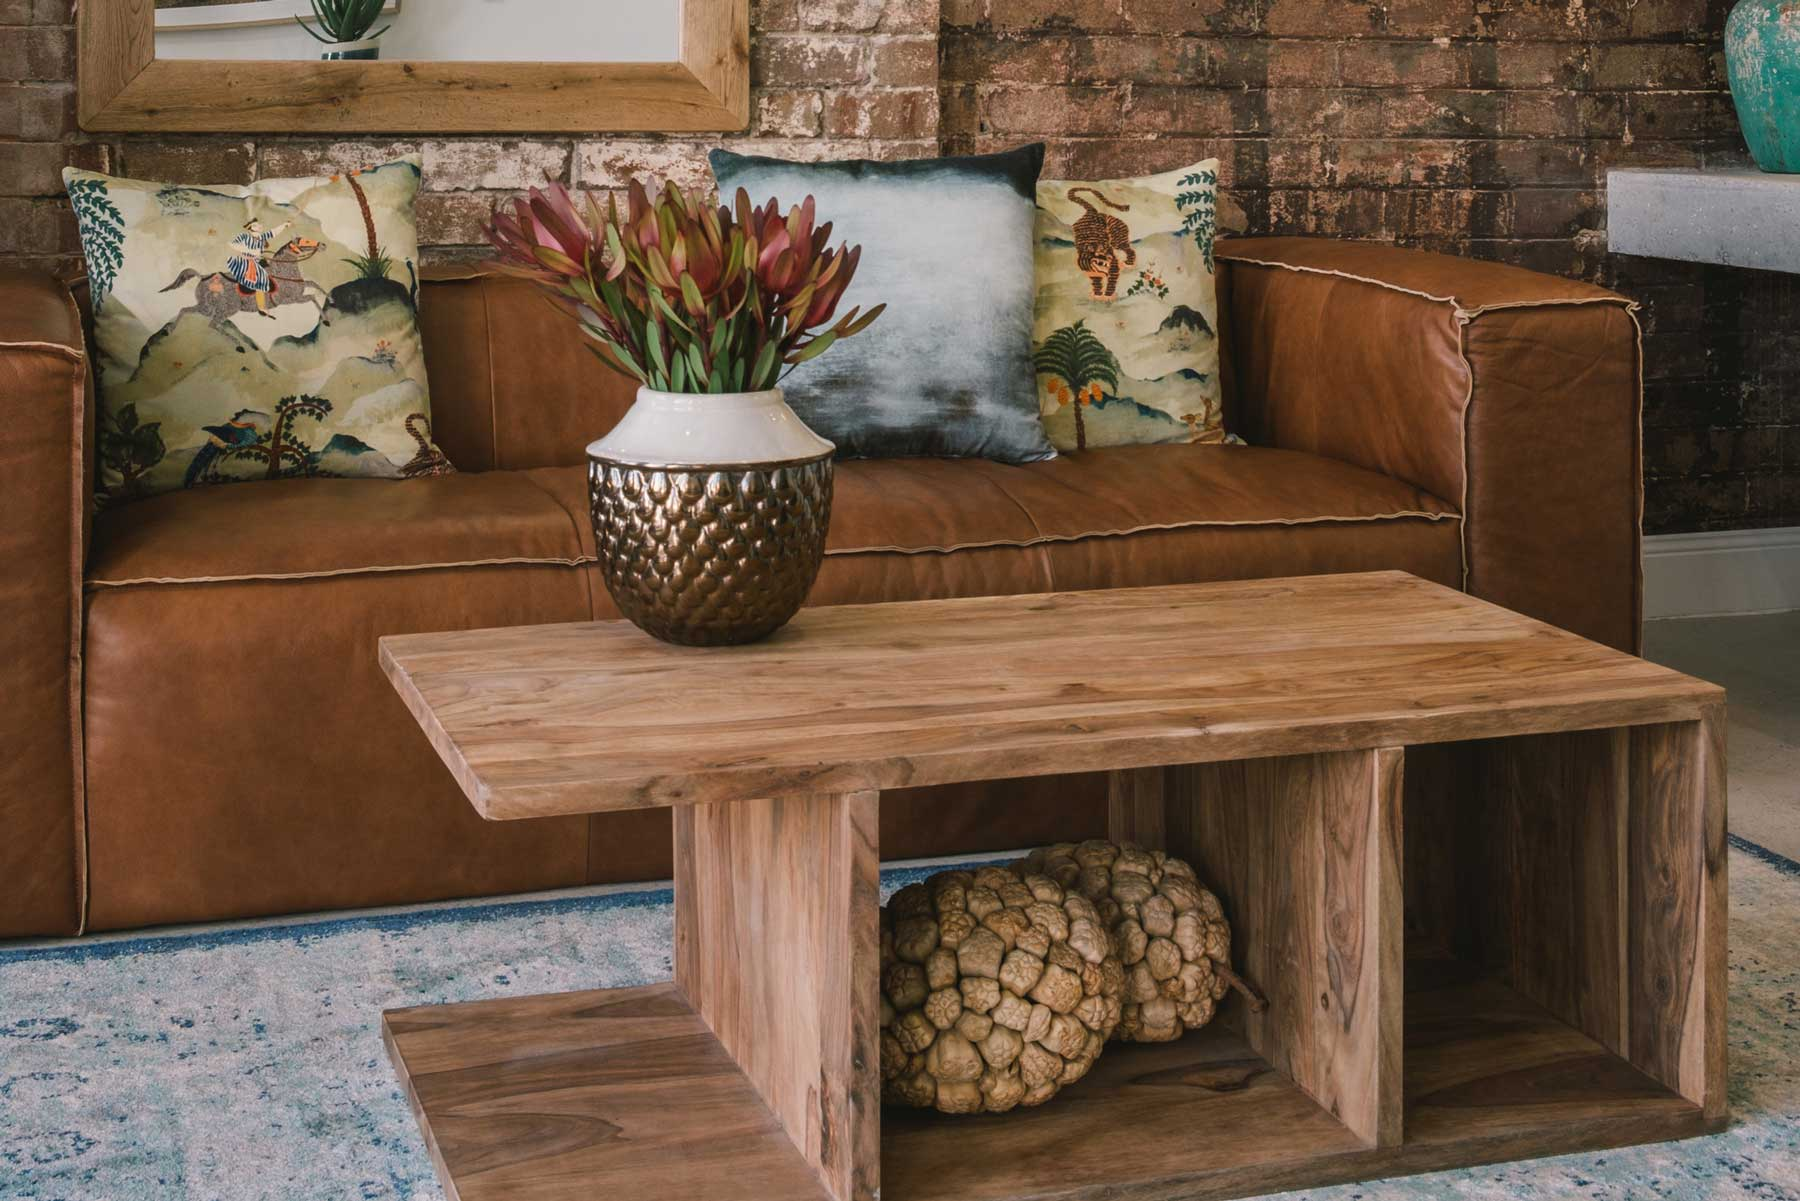 Soothing Care Dental - after - coffee table